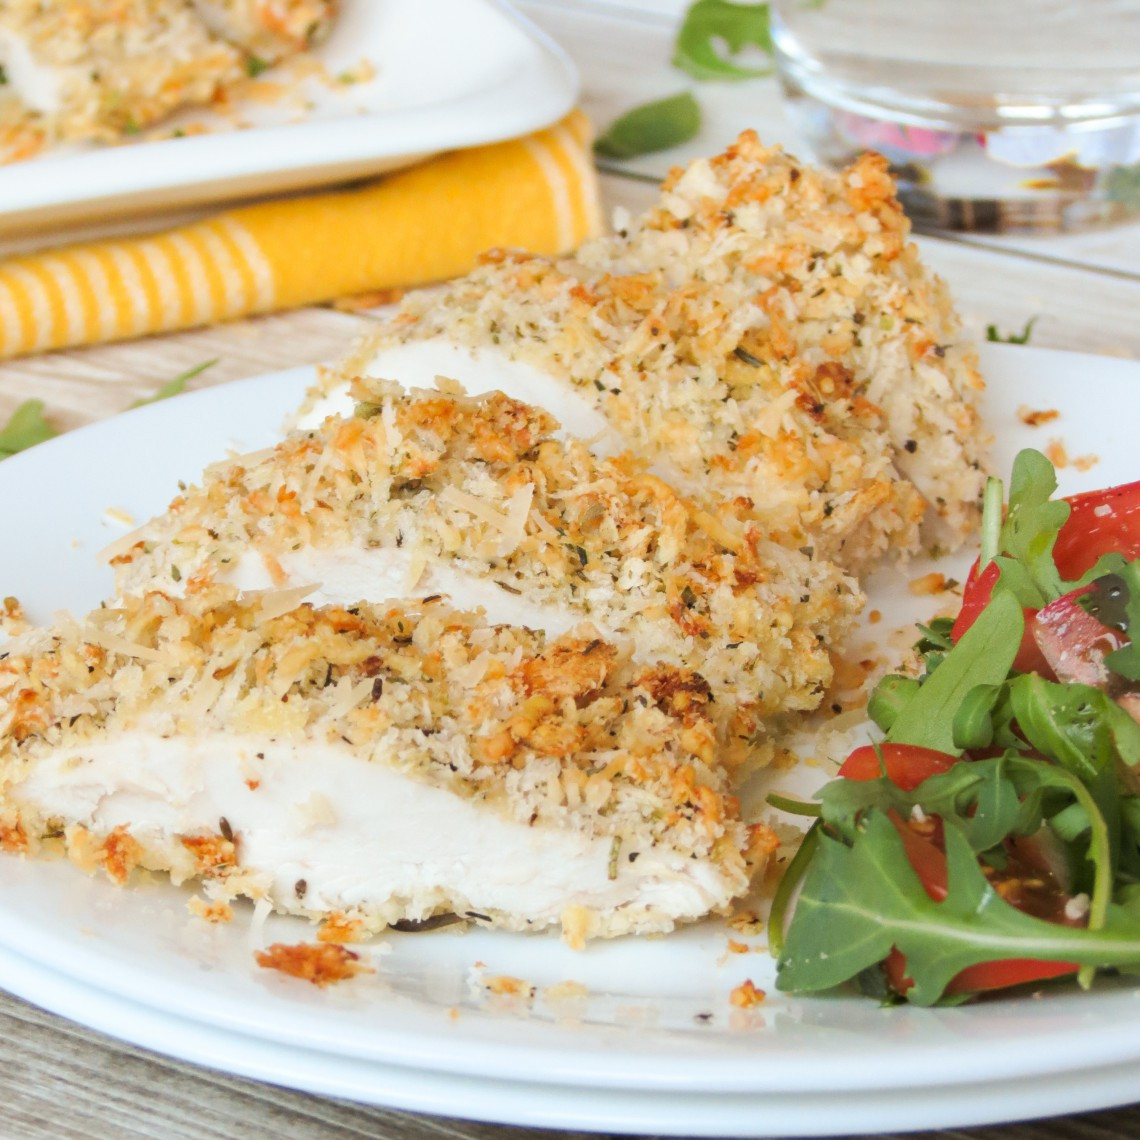 Baked Parmesan Crusted Chicken  Baked Parmesan Crusted Chicken Yummy Addiction